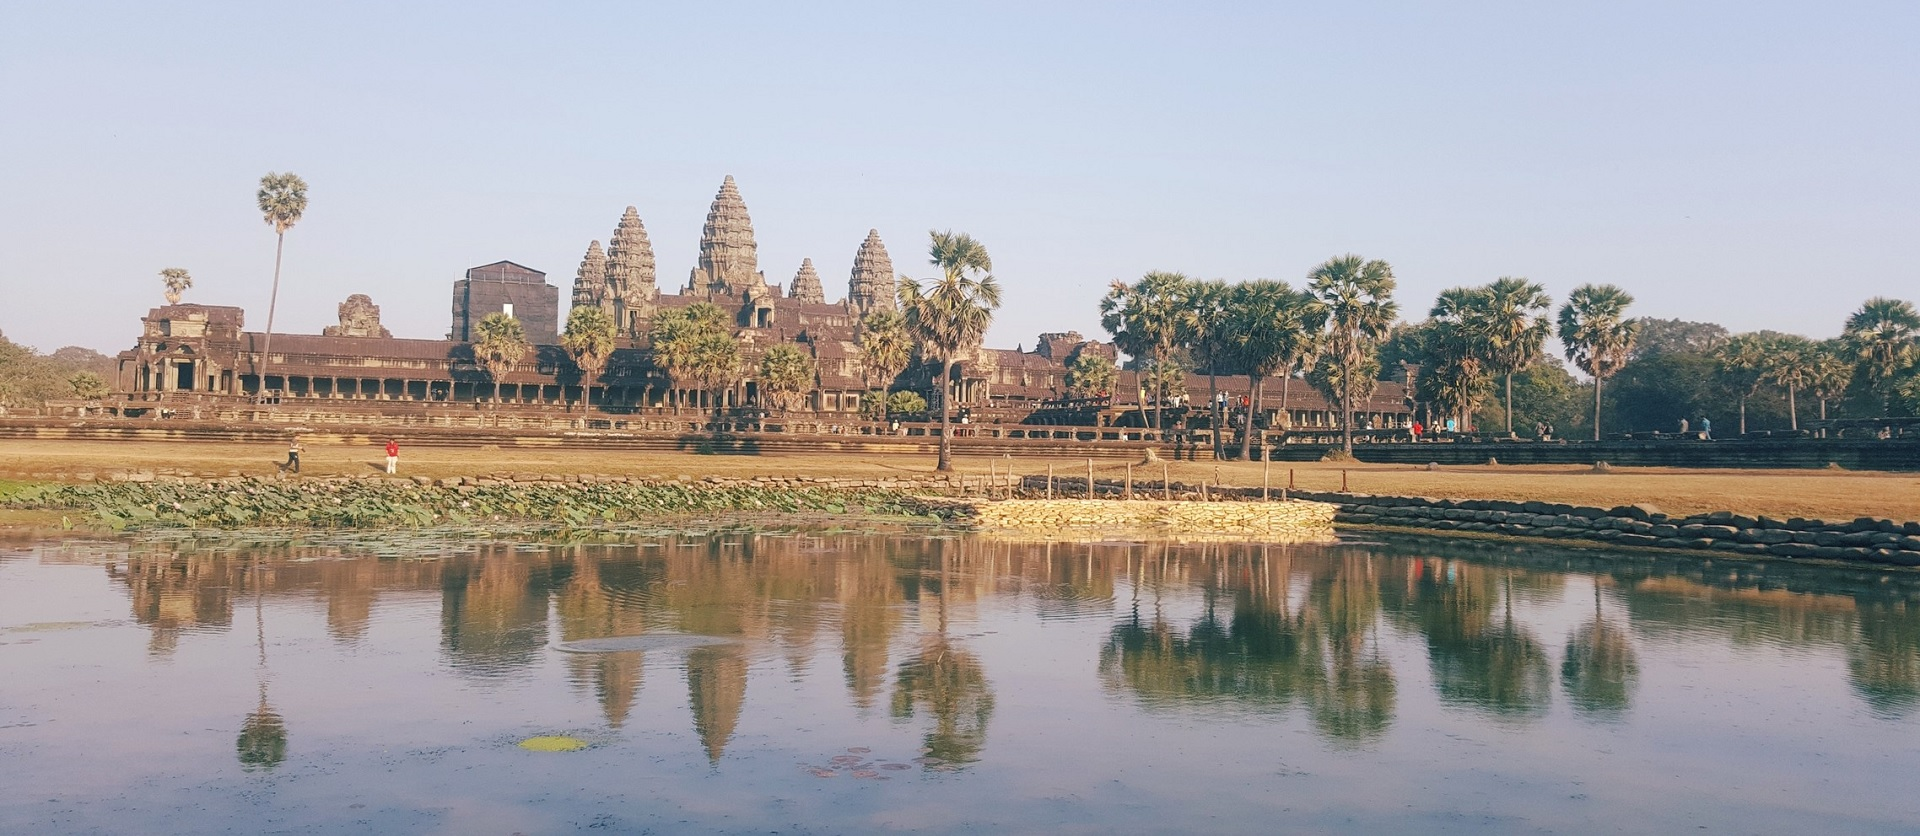 Cambodia Siem Reap (ancient capital) Khmer Kingdom Angkor Wat Cultural Heritage 4-day In-depth Tour